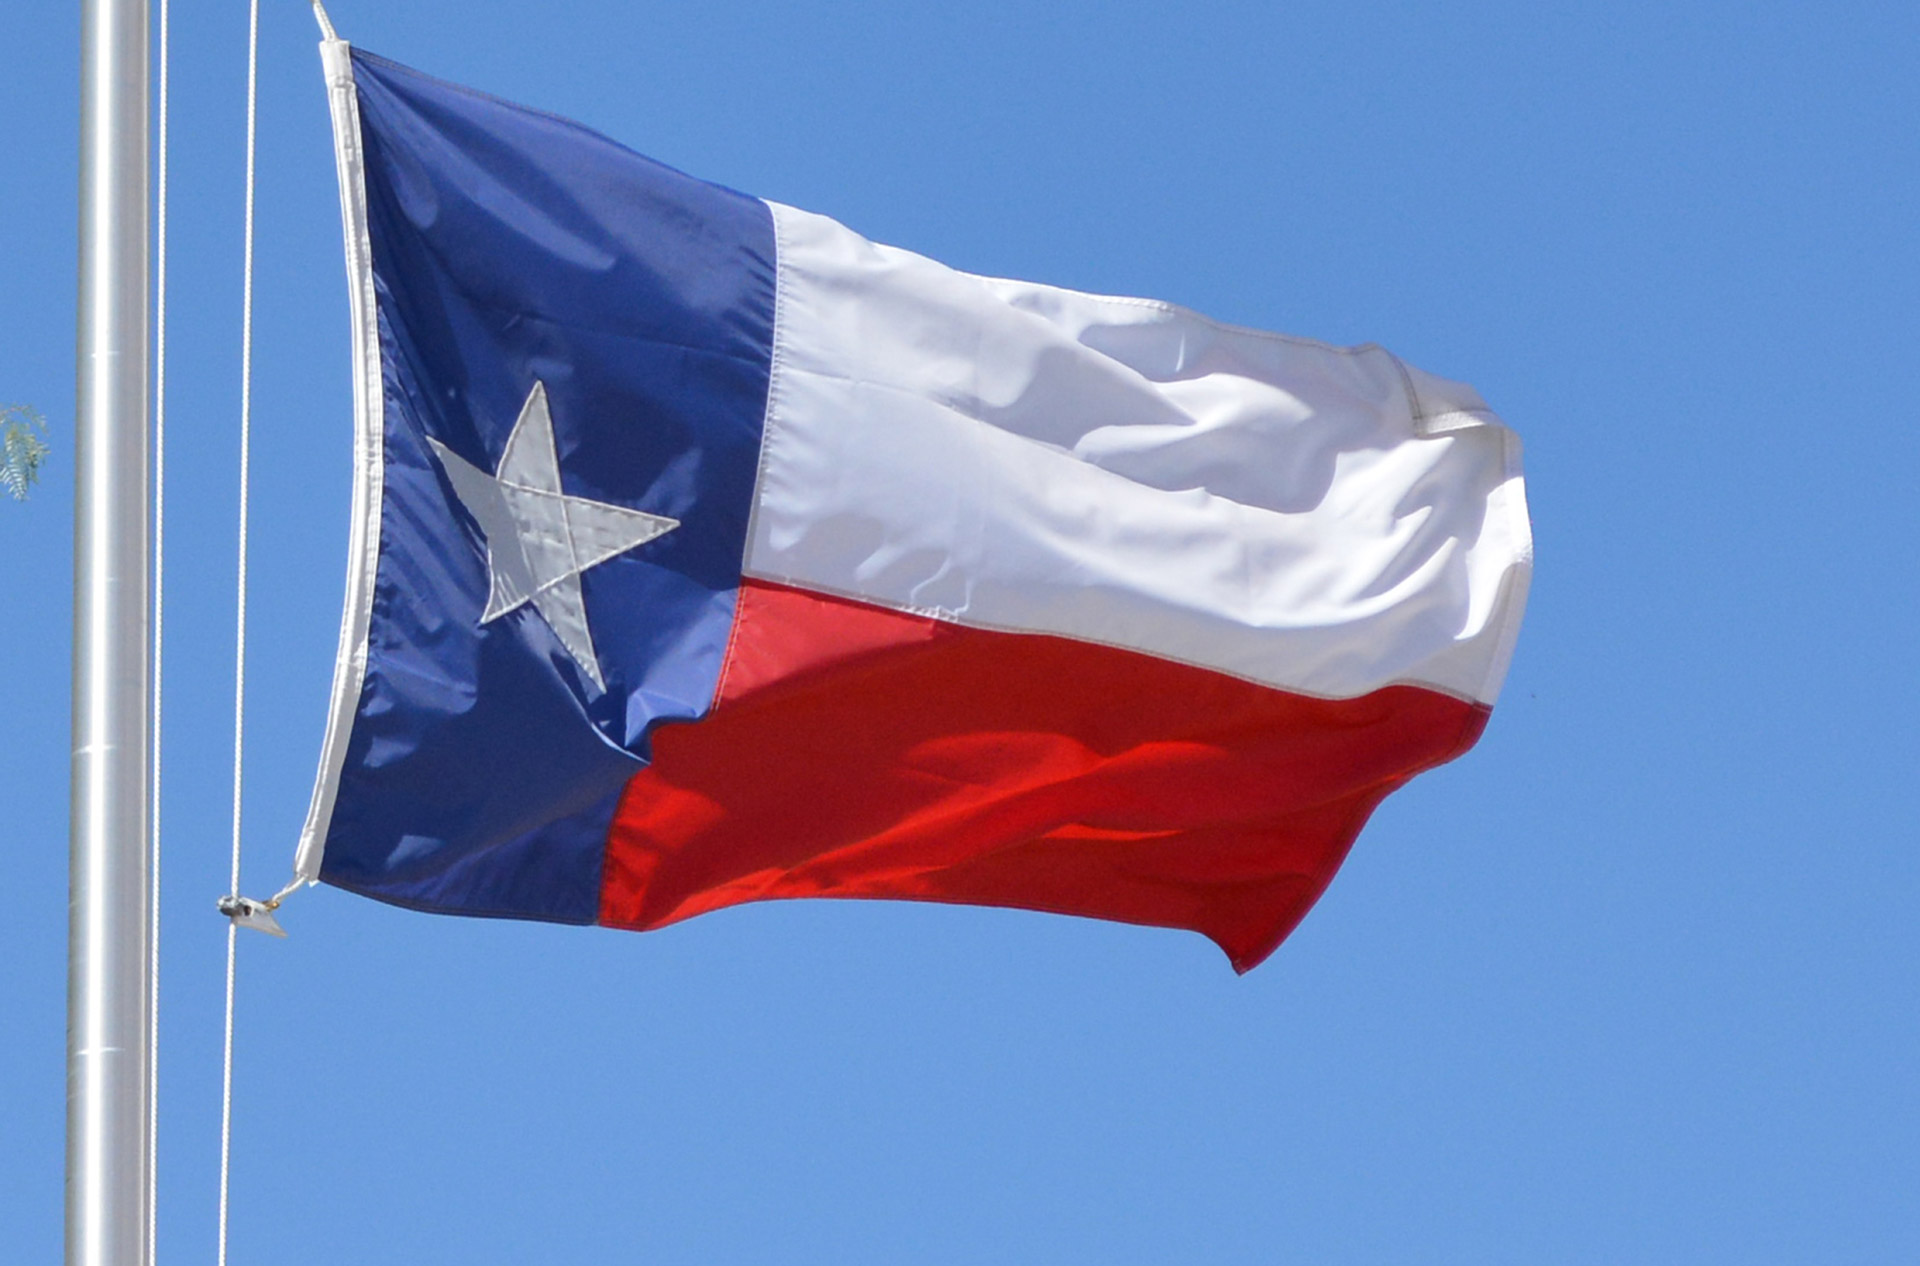 Texas flag in the wind